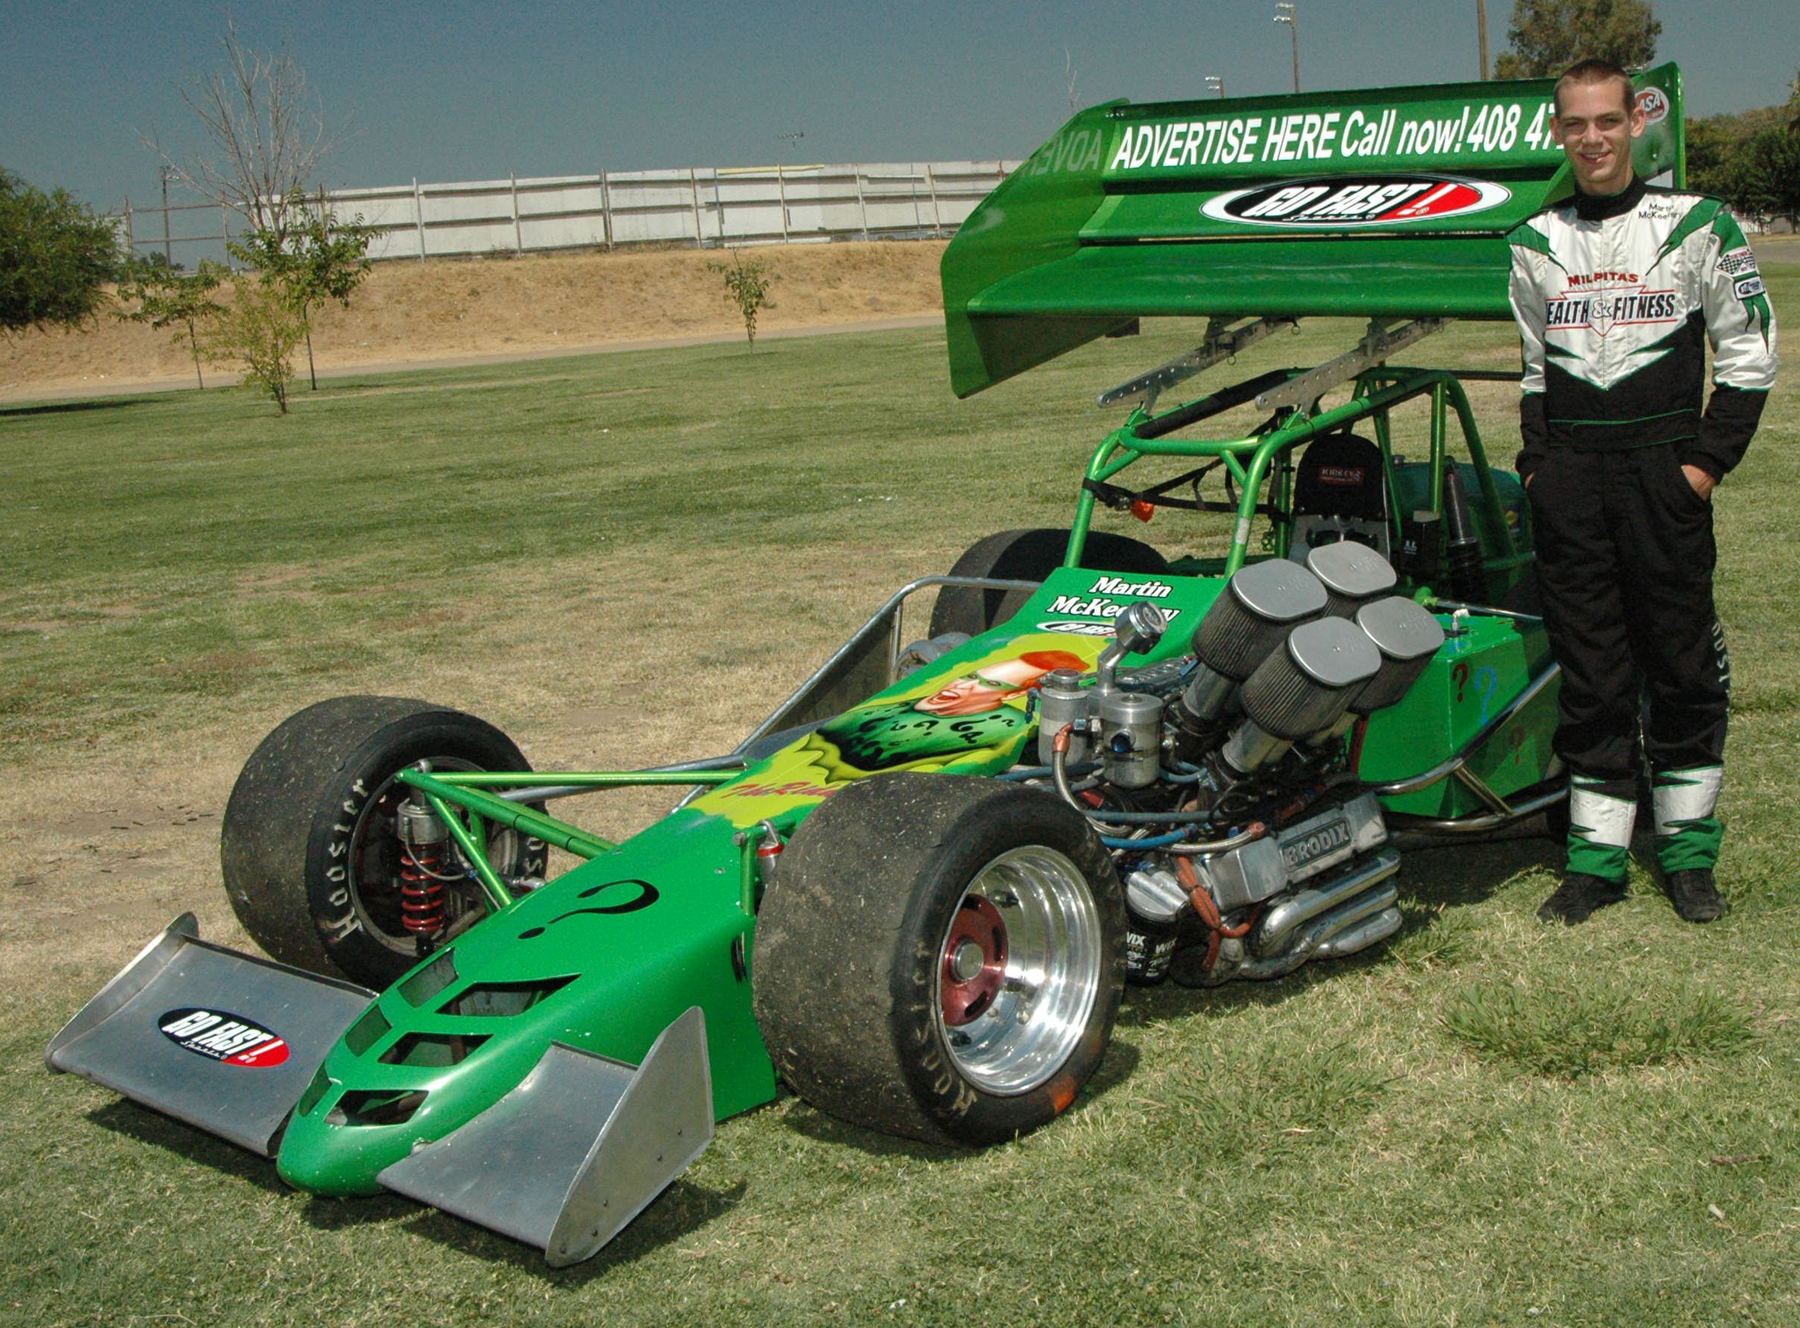 Supermodified Race Car For Sale